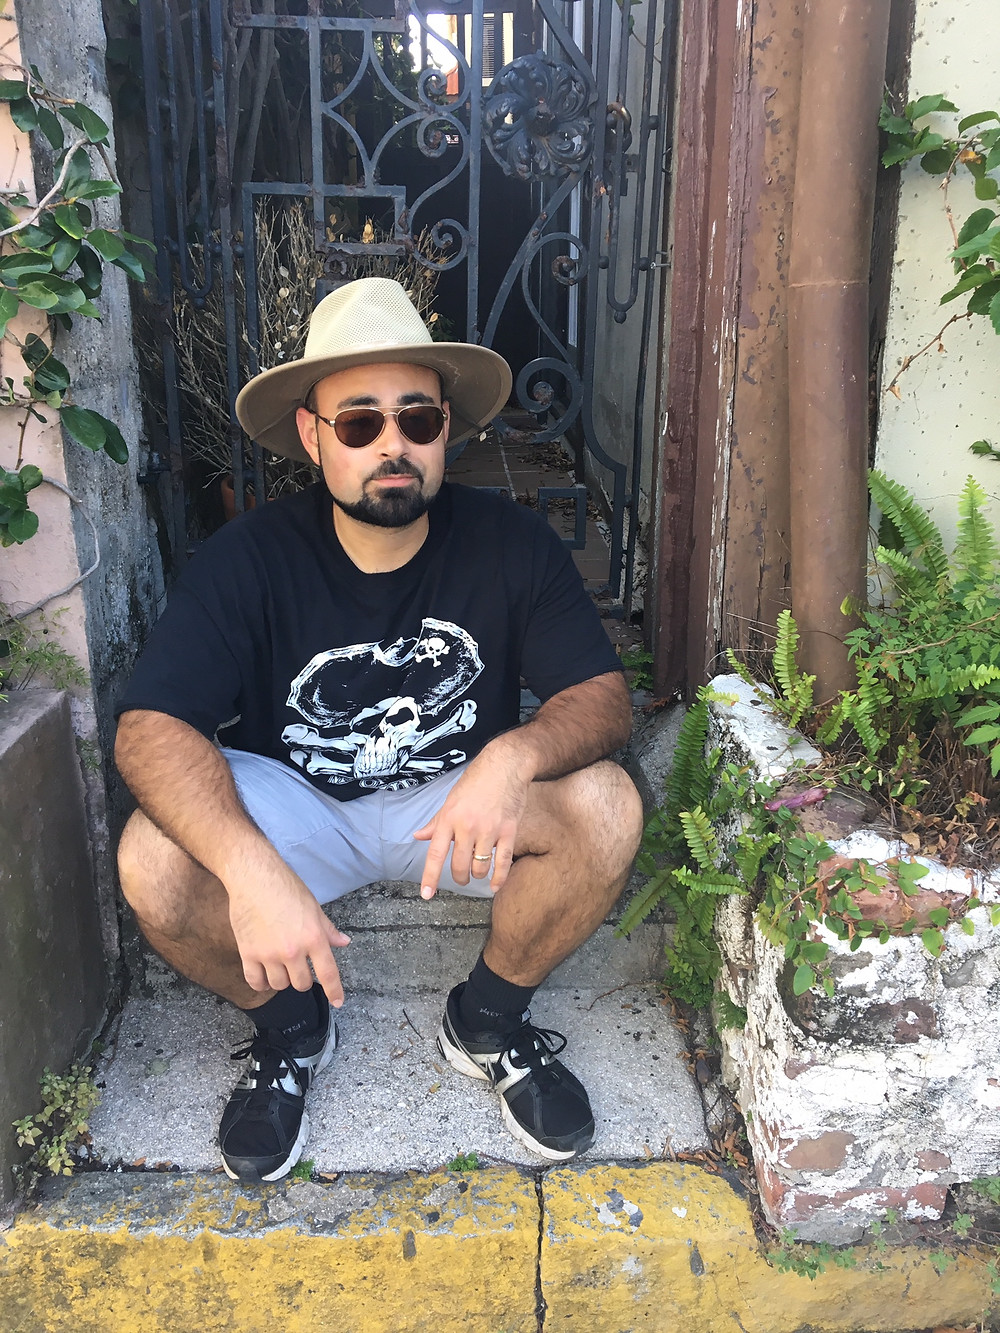 man sitting on stone step on vacation wearing wide-brimmed hat and sunglasses